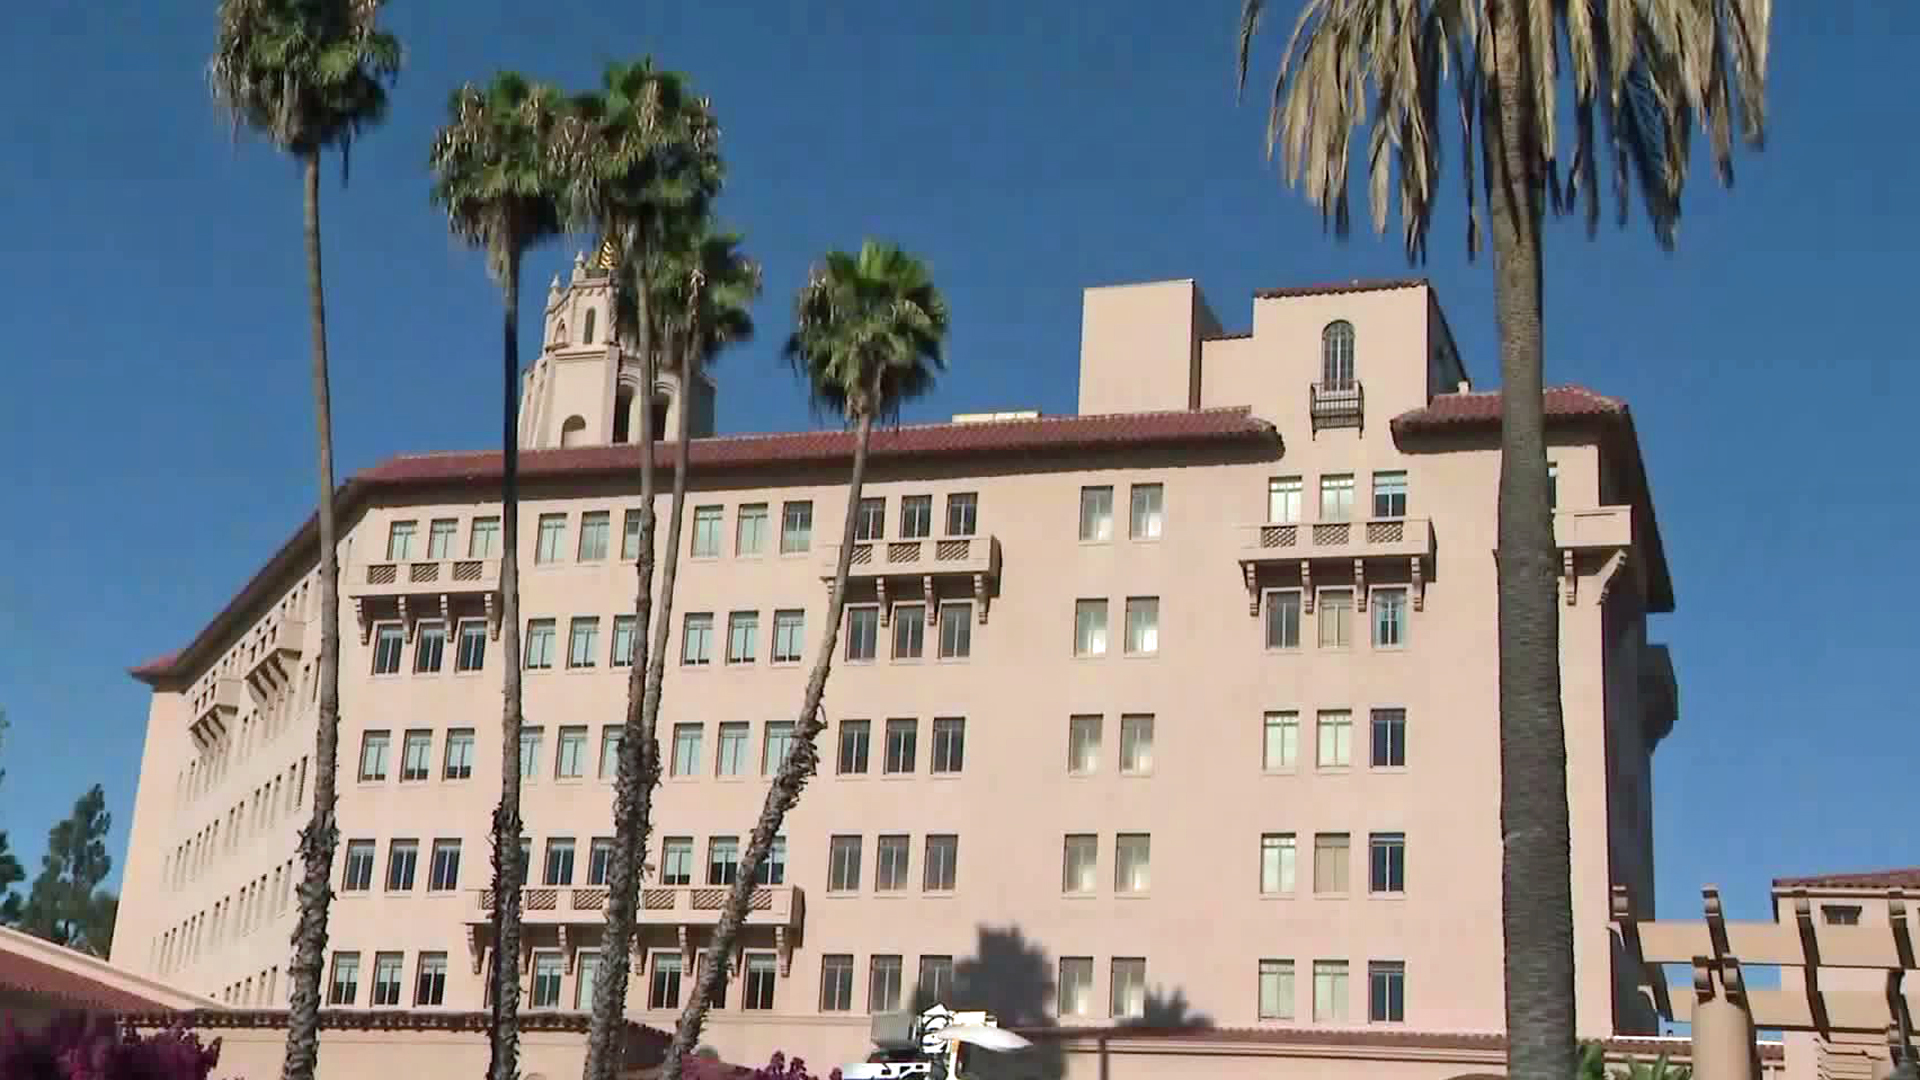 An immigration protection rally was scheduled to be held in Pasadena on Aug. 14, 2019. (Credit: KTLA)